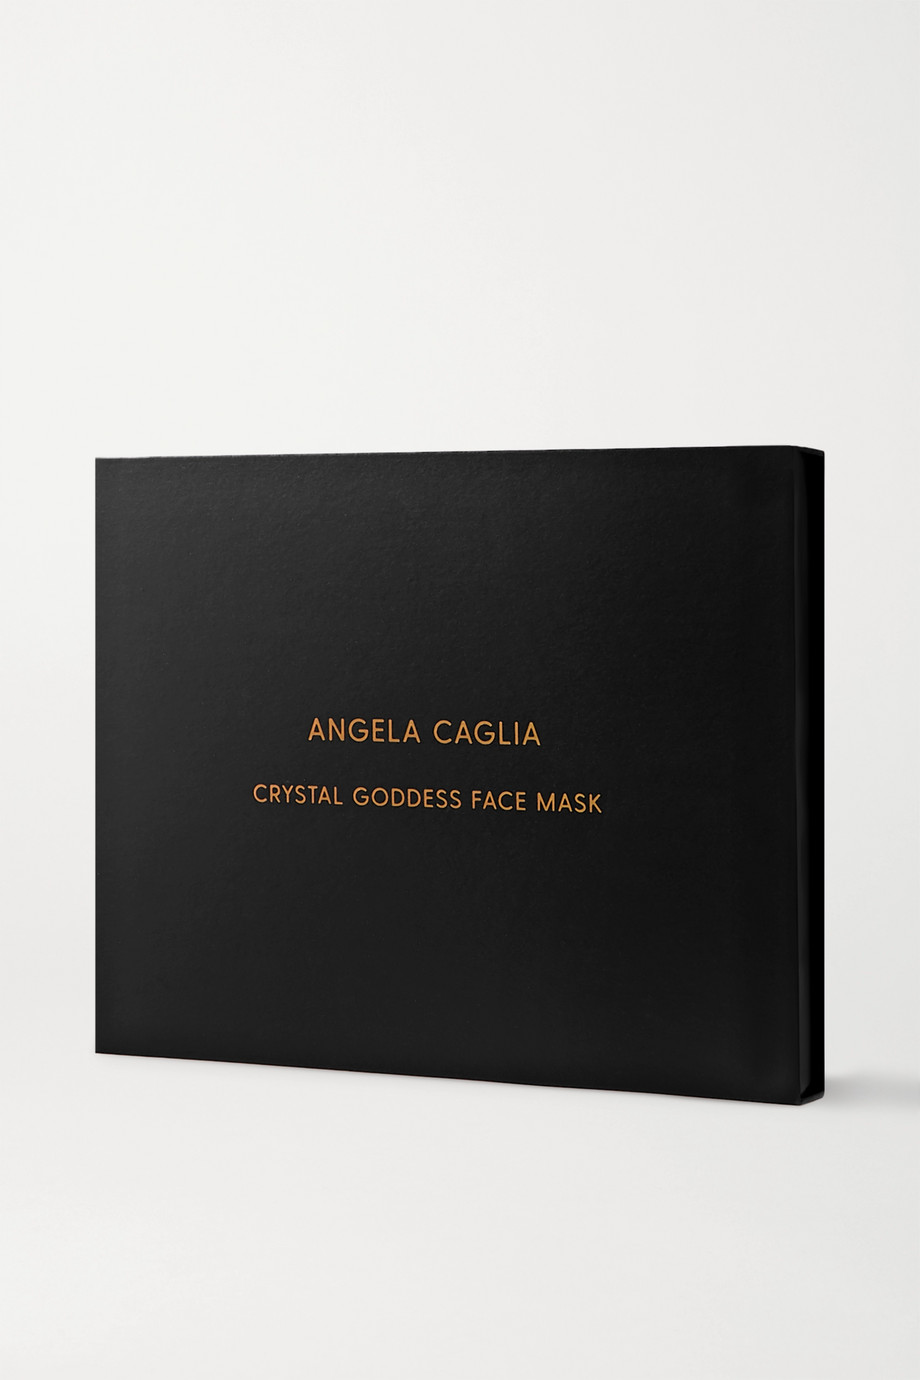 Angela Caglia Crystal Goddess Face Mask